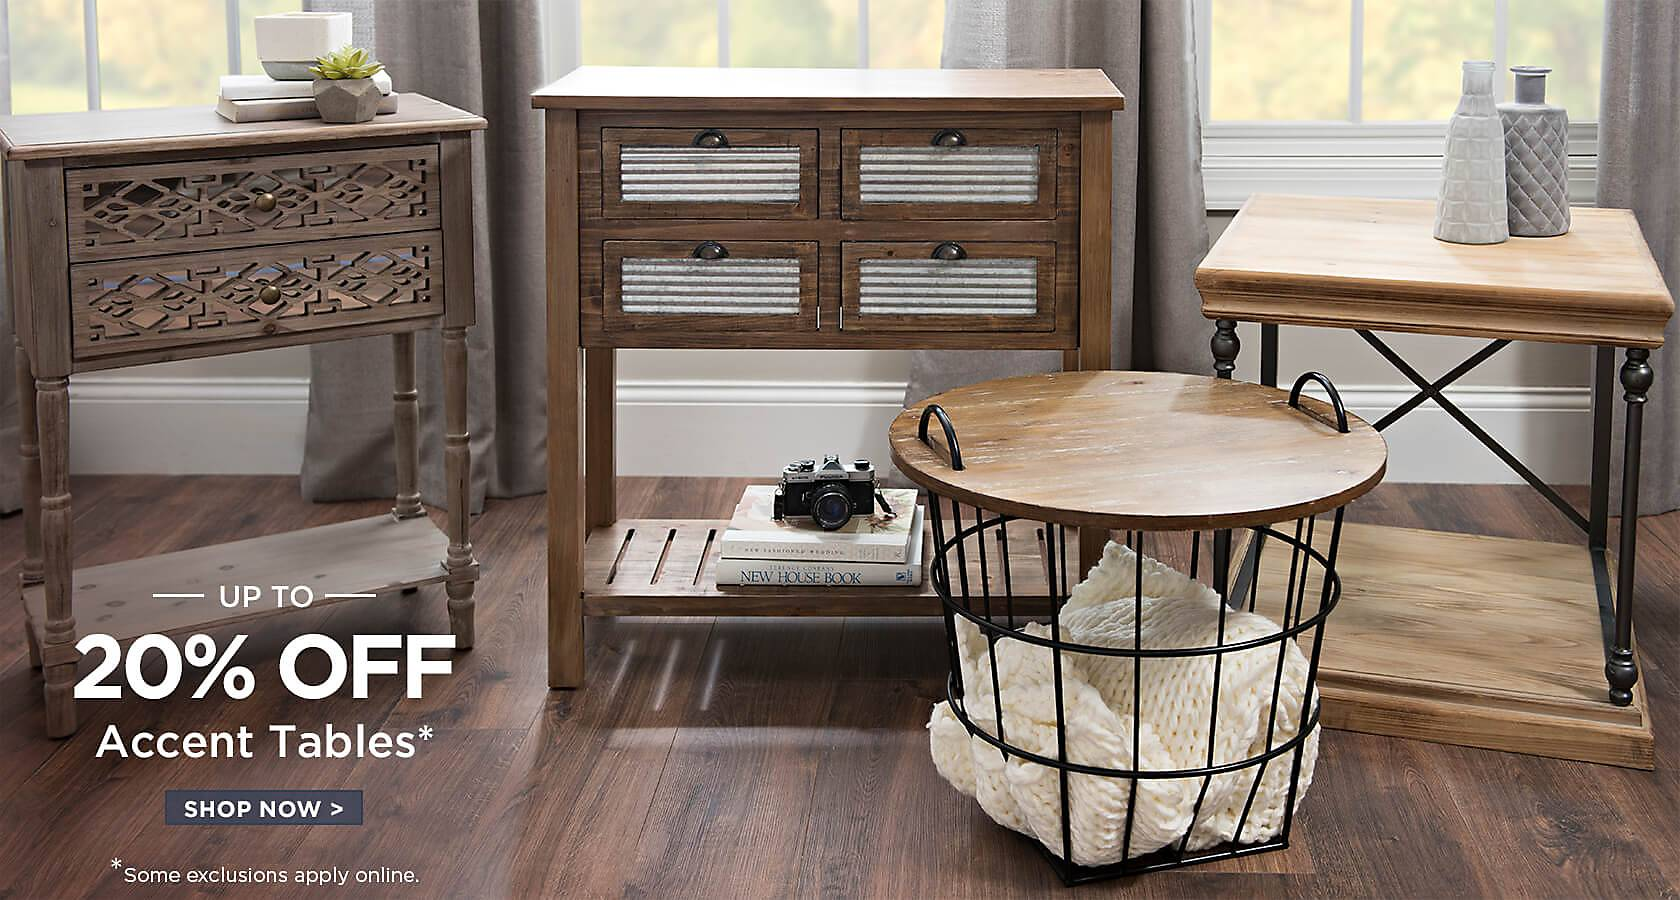 Up To 20% Off Accent Tables   Some Exclusions Apply Online   Shop Now